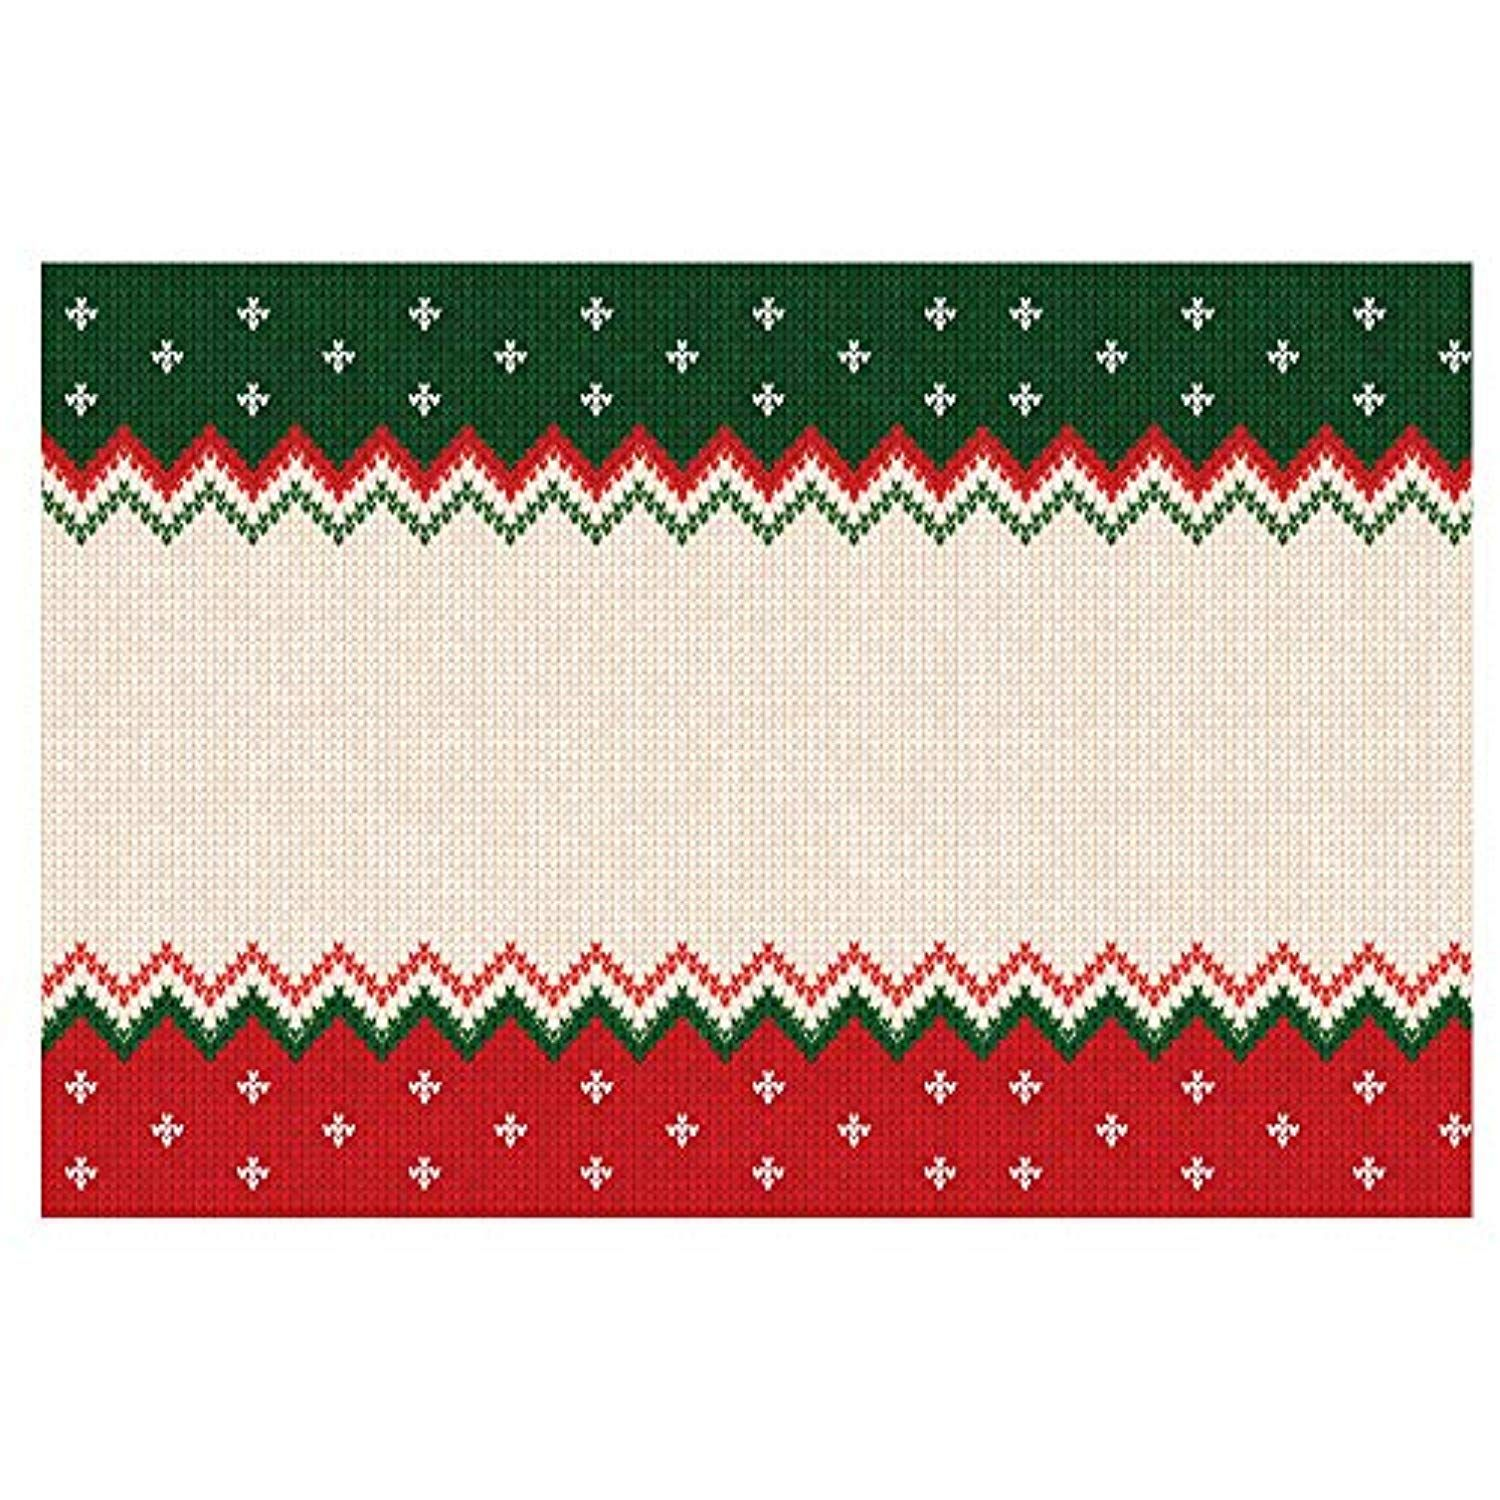 Note Card Cafe Paper Placemats 48 Count 11 X 17 Christmas Knit Sweater Find Out More About The Gr Fall Table Decor Thanksgiving Dinner Decor Placemats